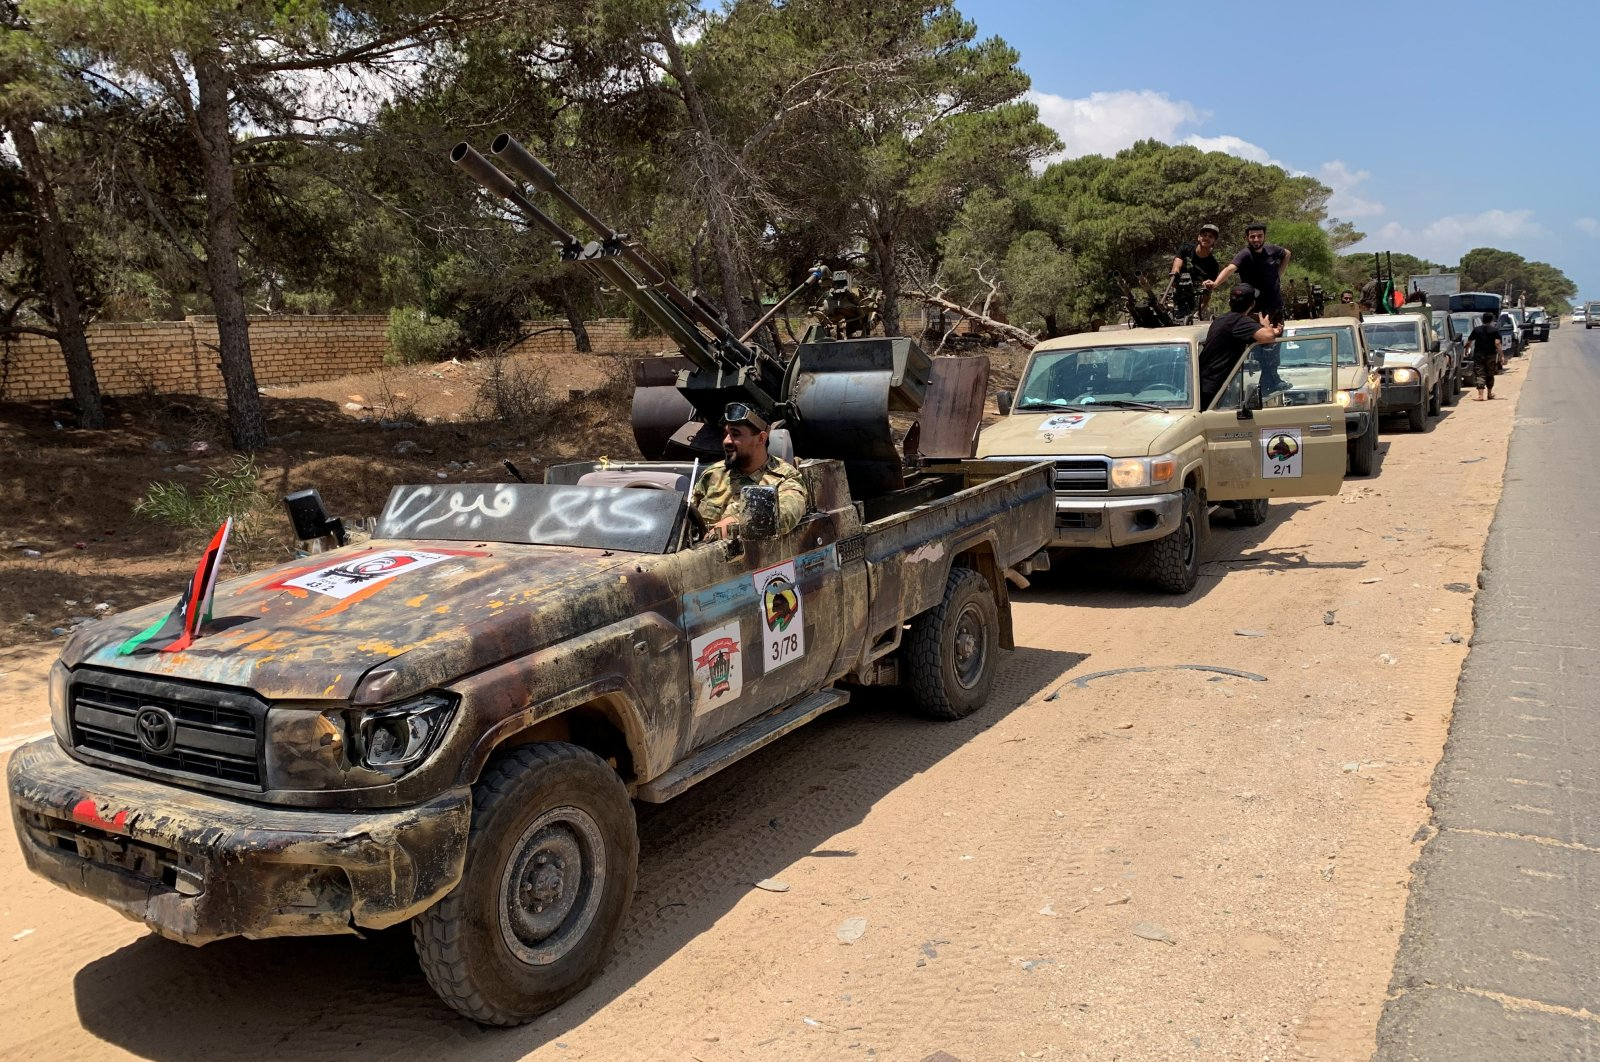 Troops loyal to Libya's internationally recognized government are seen in military vehicles as they prepare in the capital Tripoli before heading to Sirte, Libya, July 6, 2020. (Reuters Photo)